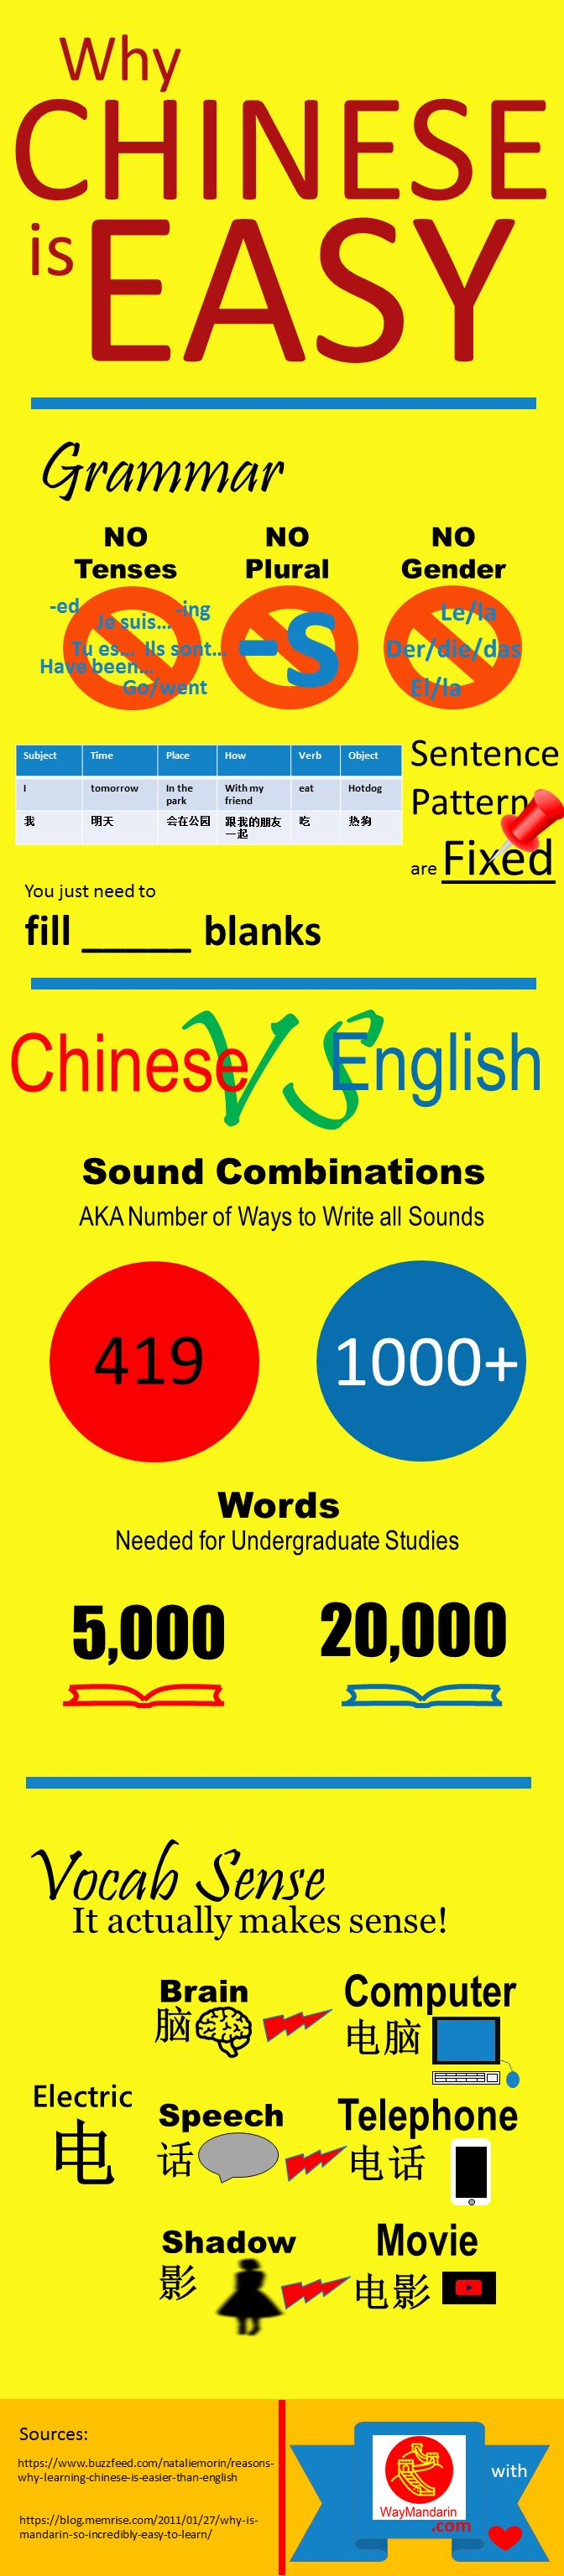 Infographic. Many think Chinese is hard to learn. But actually, there are many reasons that make Chinese easier than most people realize. Here are just a few reasons why Chinese is easy. From waymandarin.com blog.